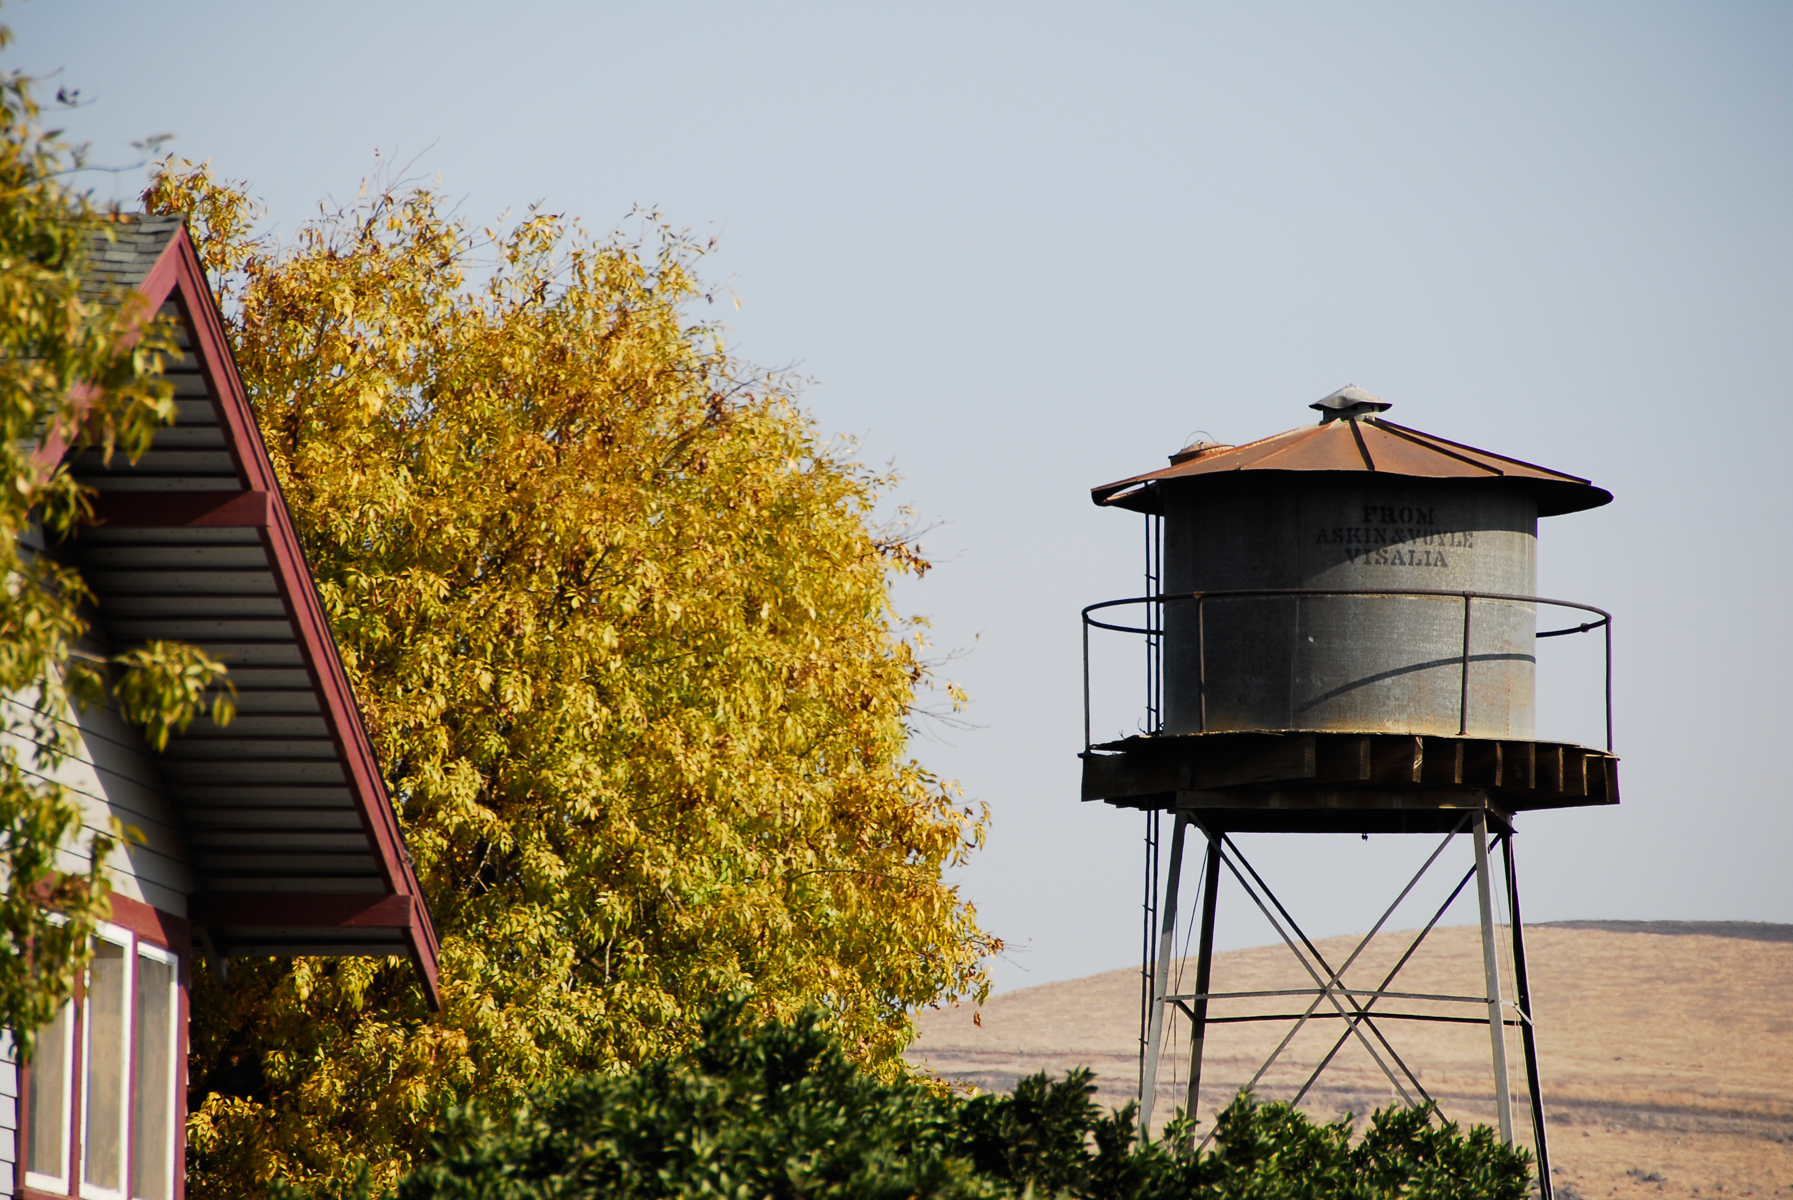 Water Tank in the Foothills, Boulders, Bspo06, Foothills, House, HQ Photo